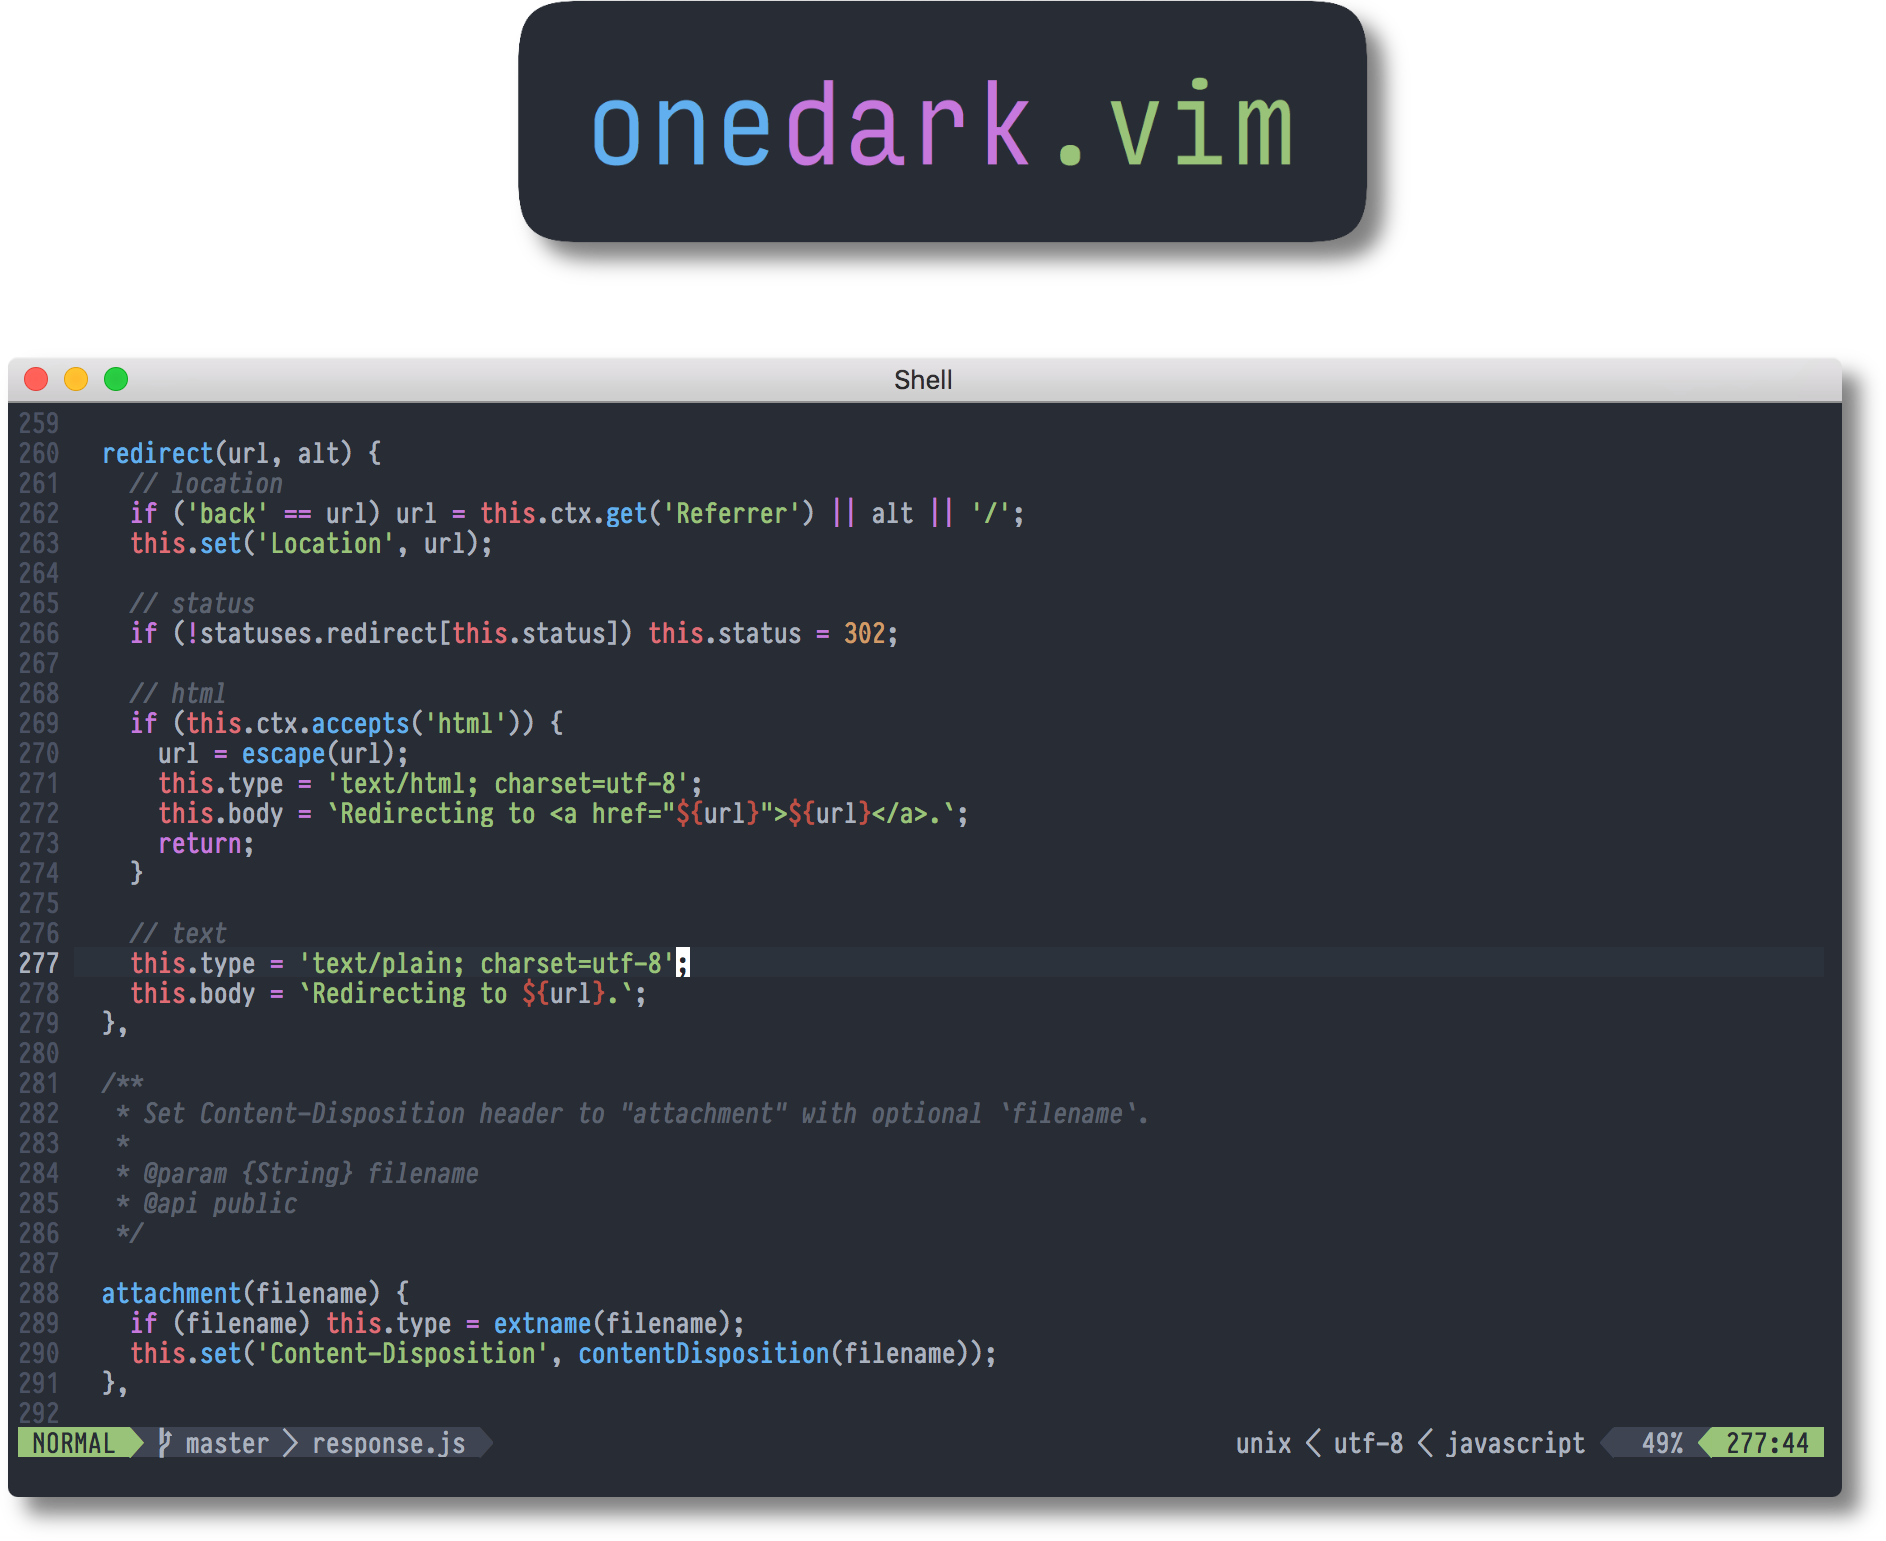 onedark vim - Vim Awesome